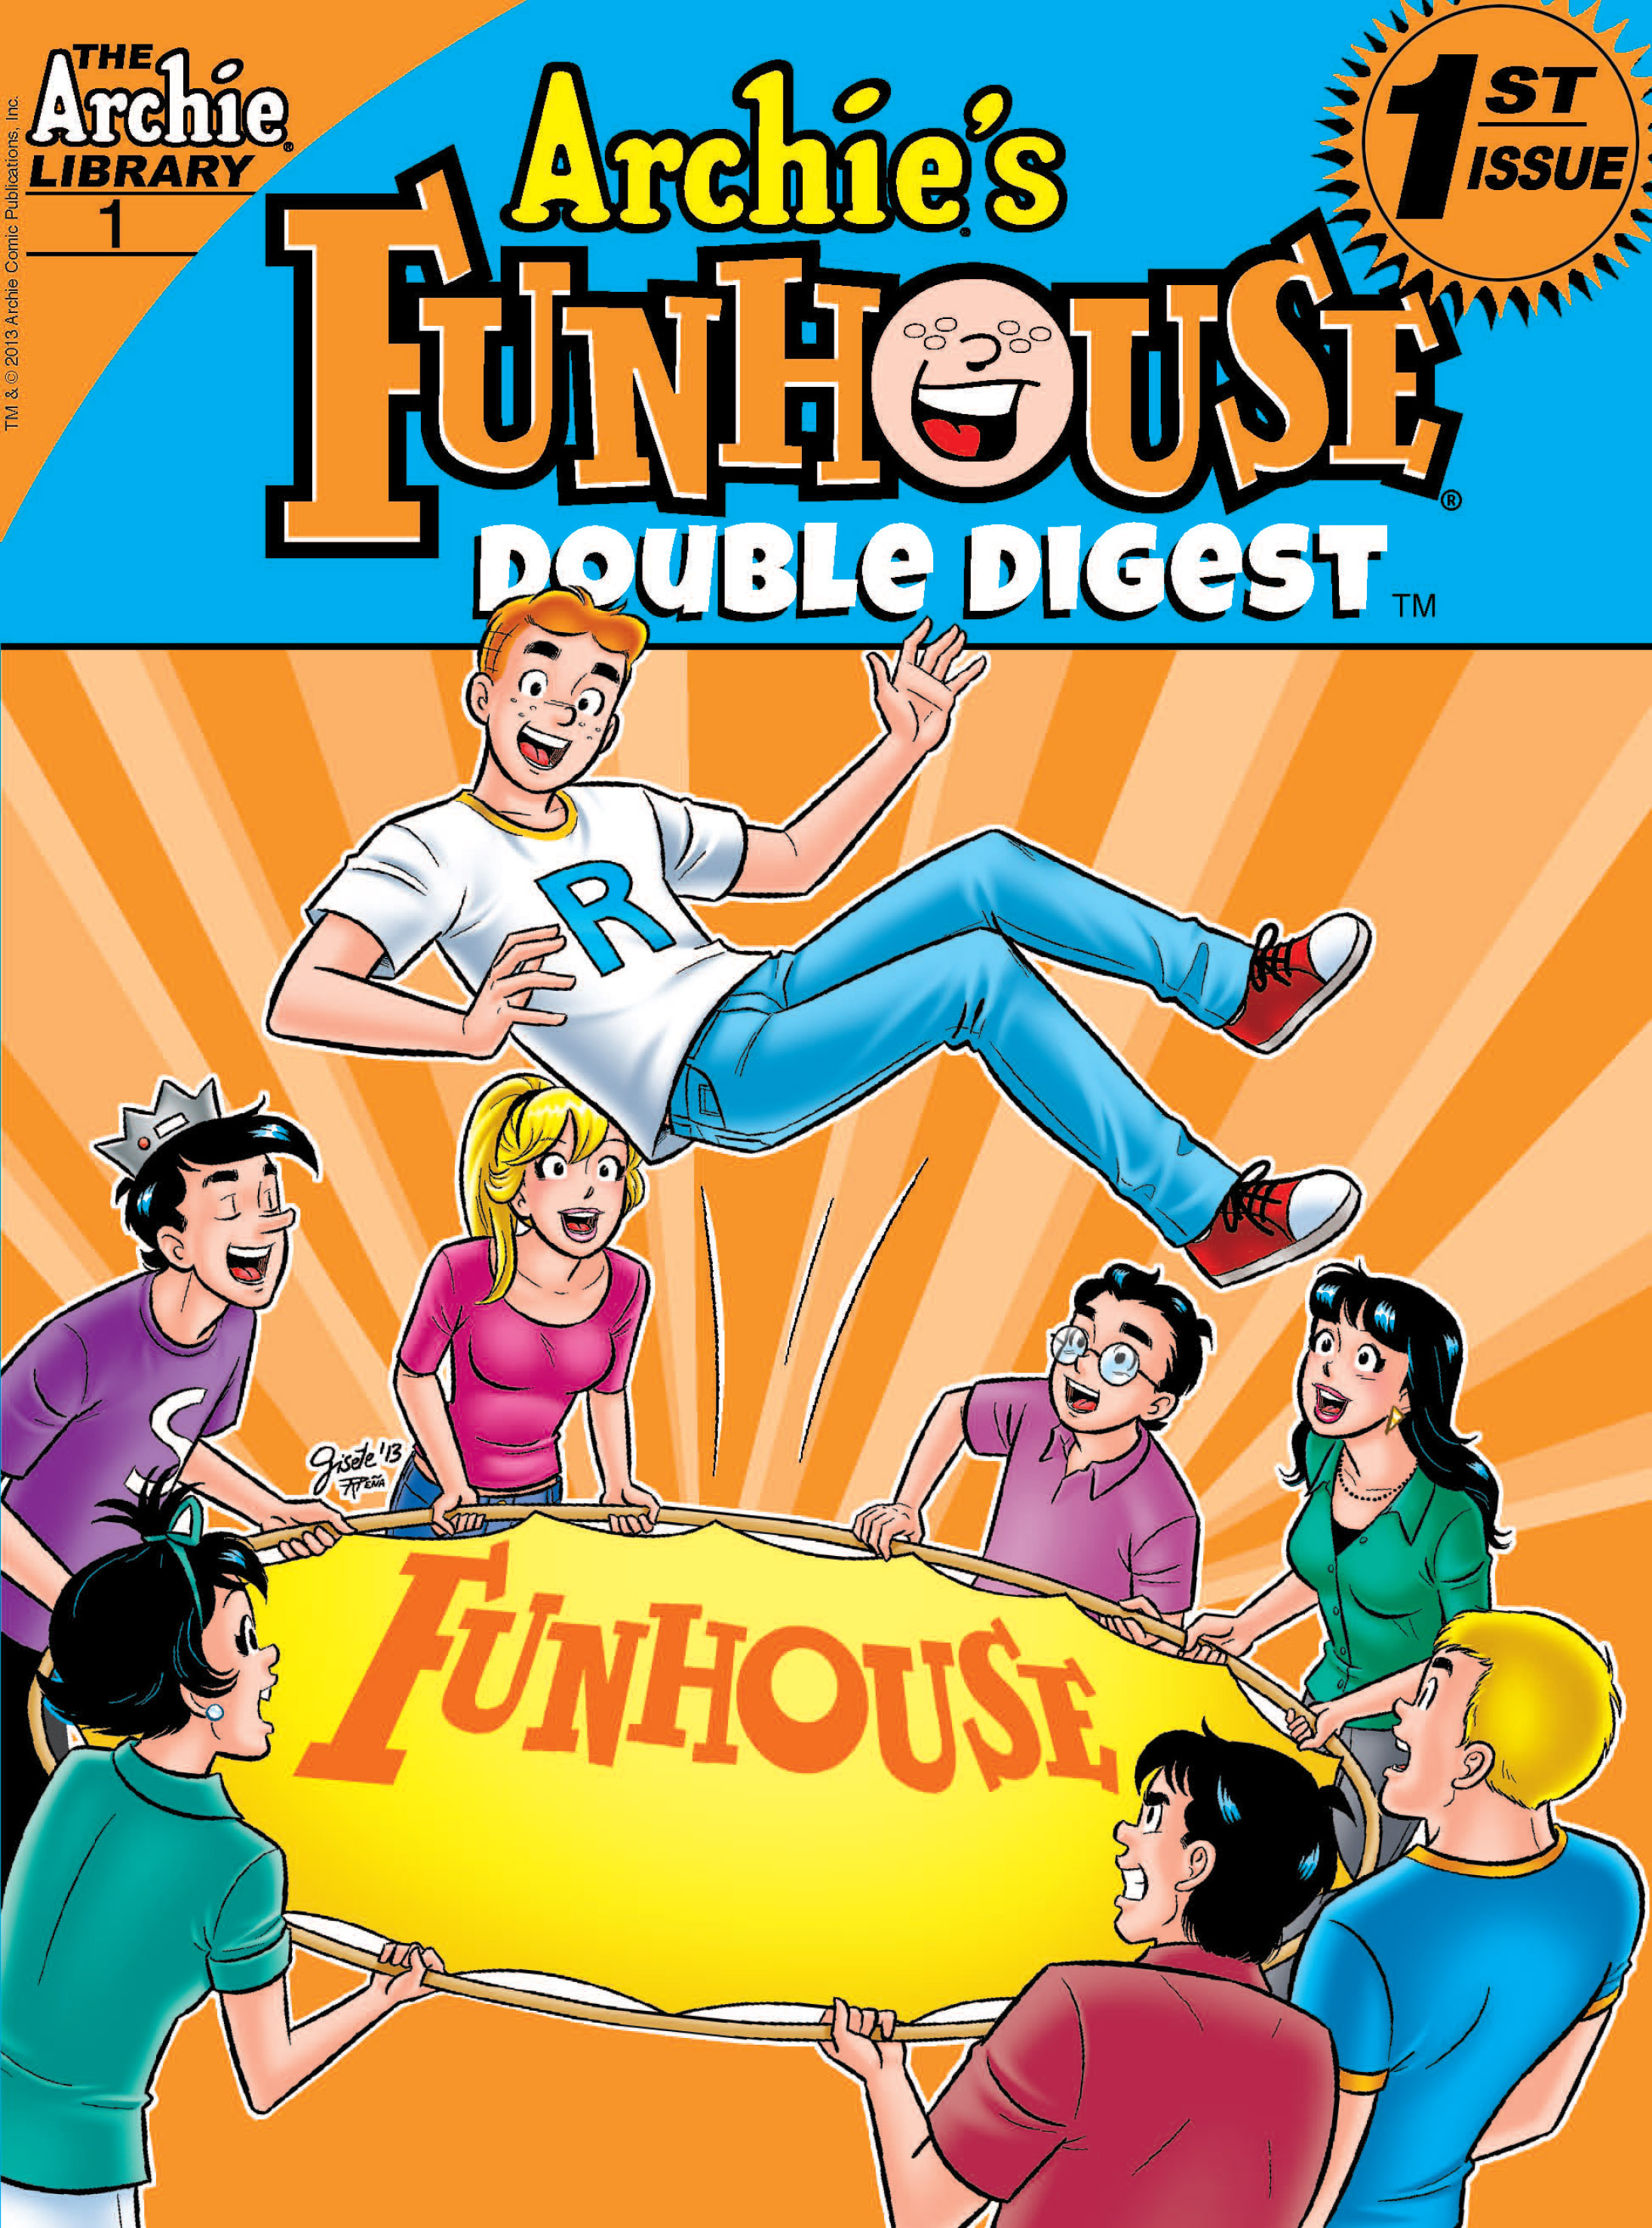 Read online Archie's Funhouse Double Digest comic -  Issue #1 - 1